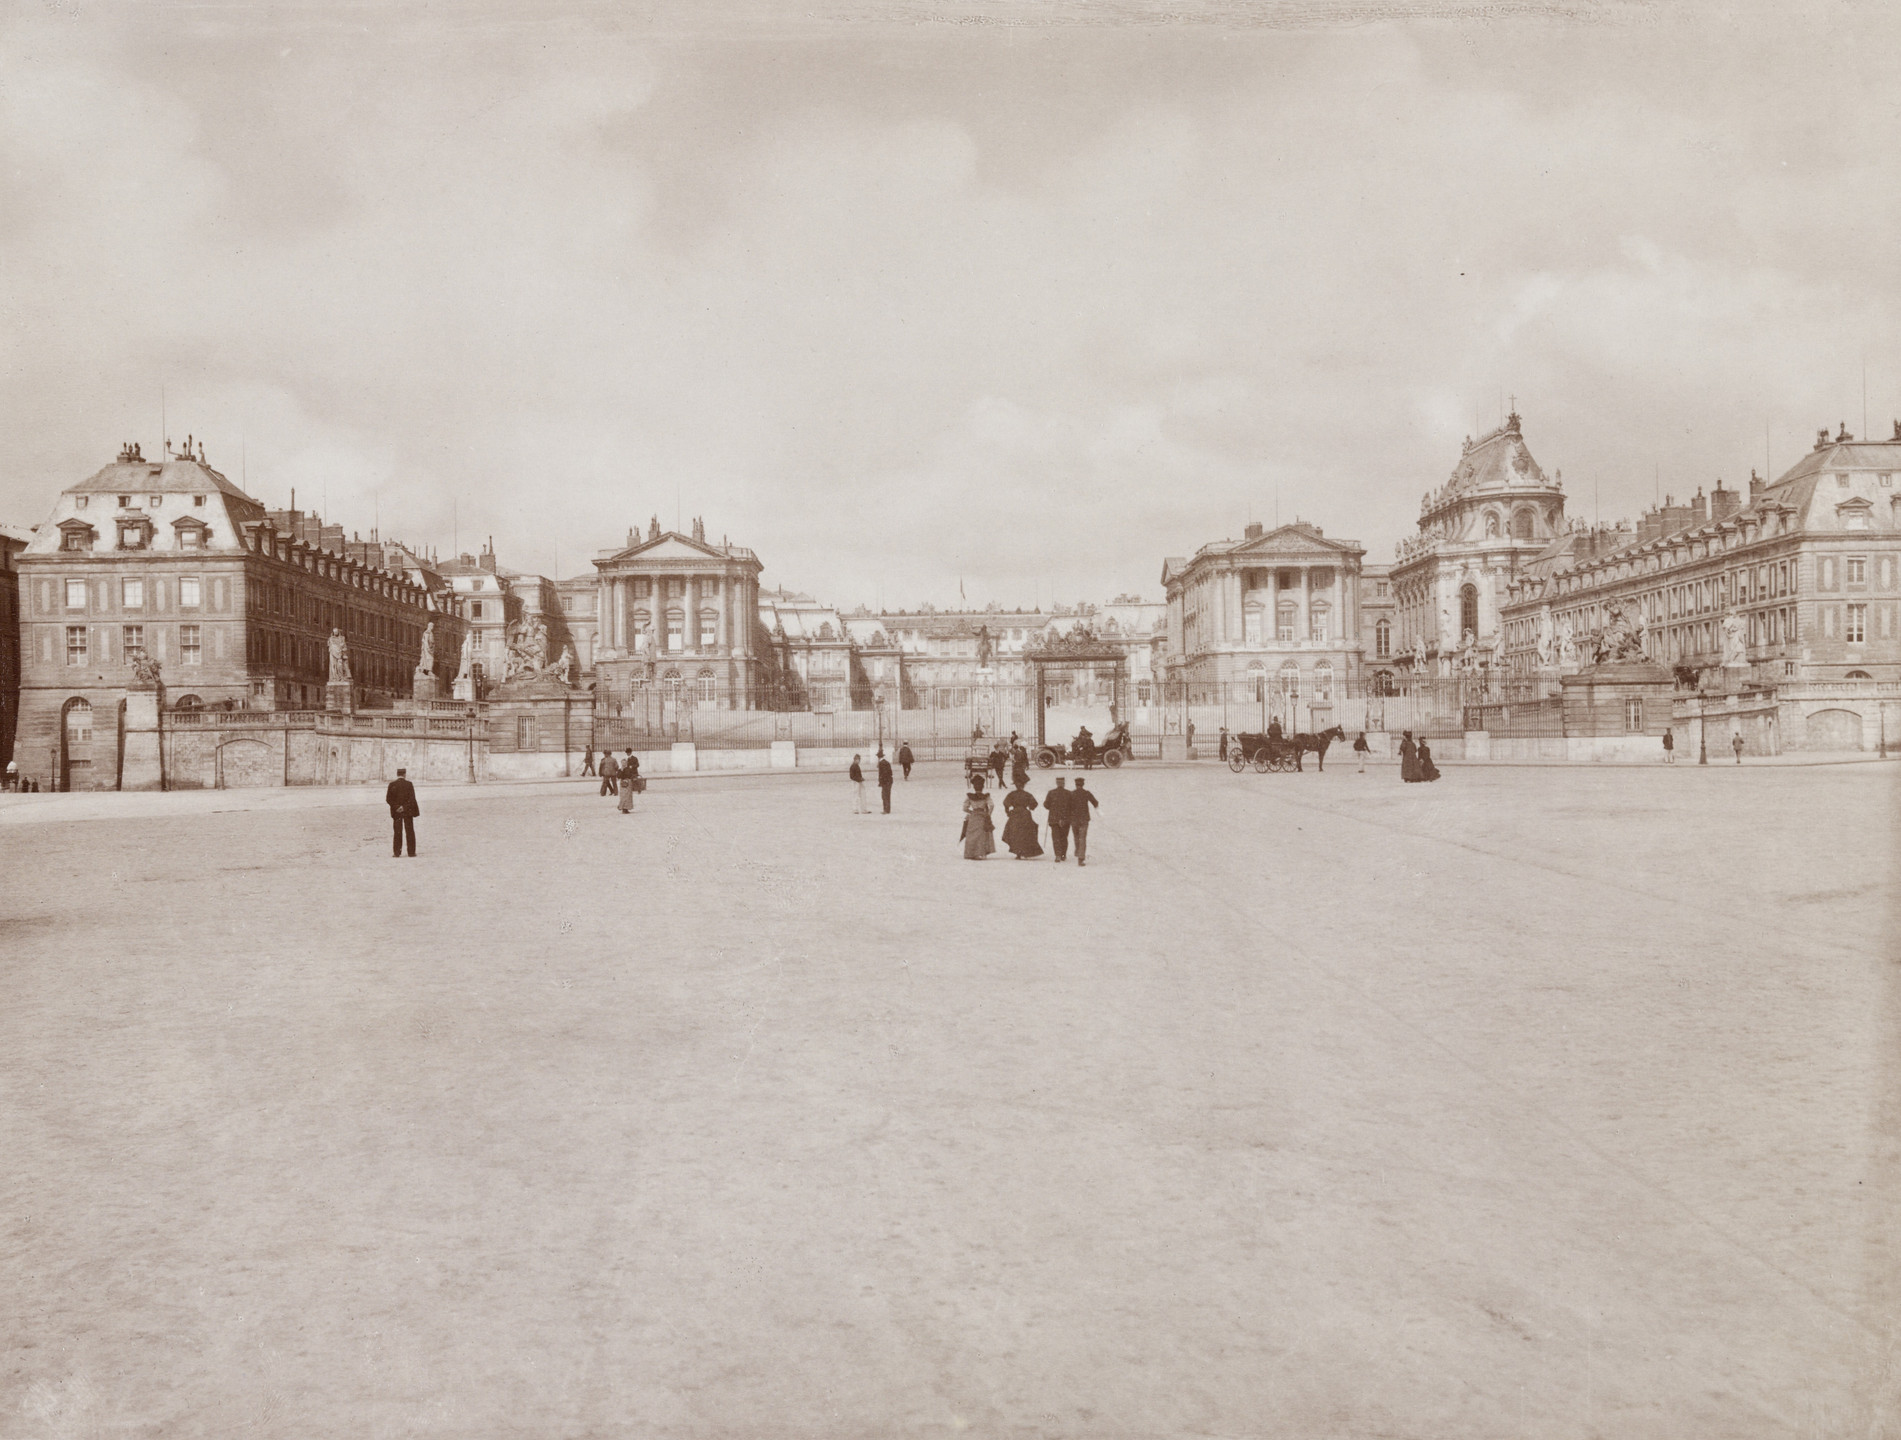 Leopoldo and Guiseppe Alinari. Chateau de Versailles- Panorama. c. 1850s